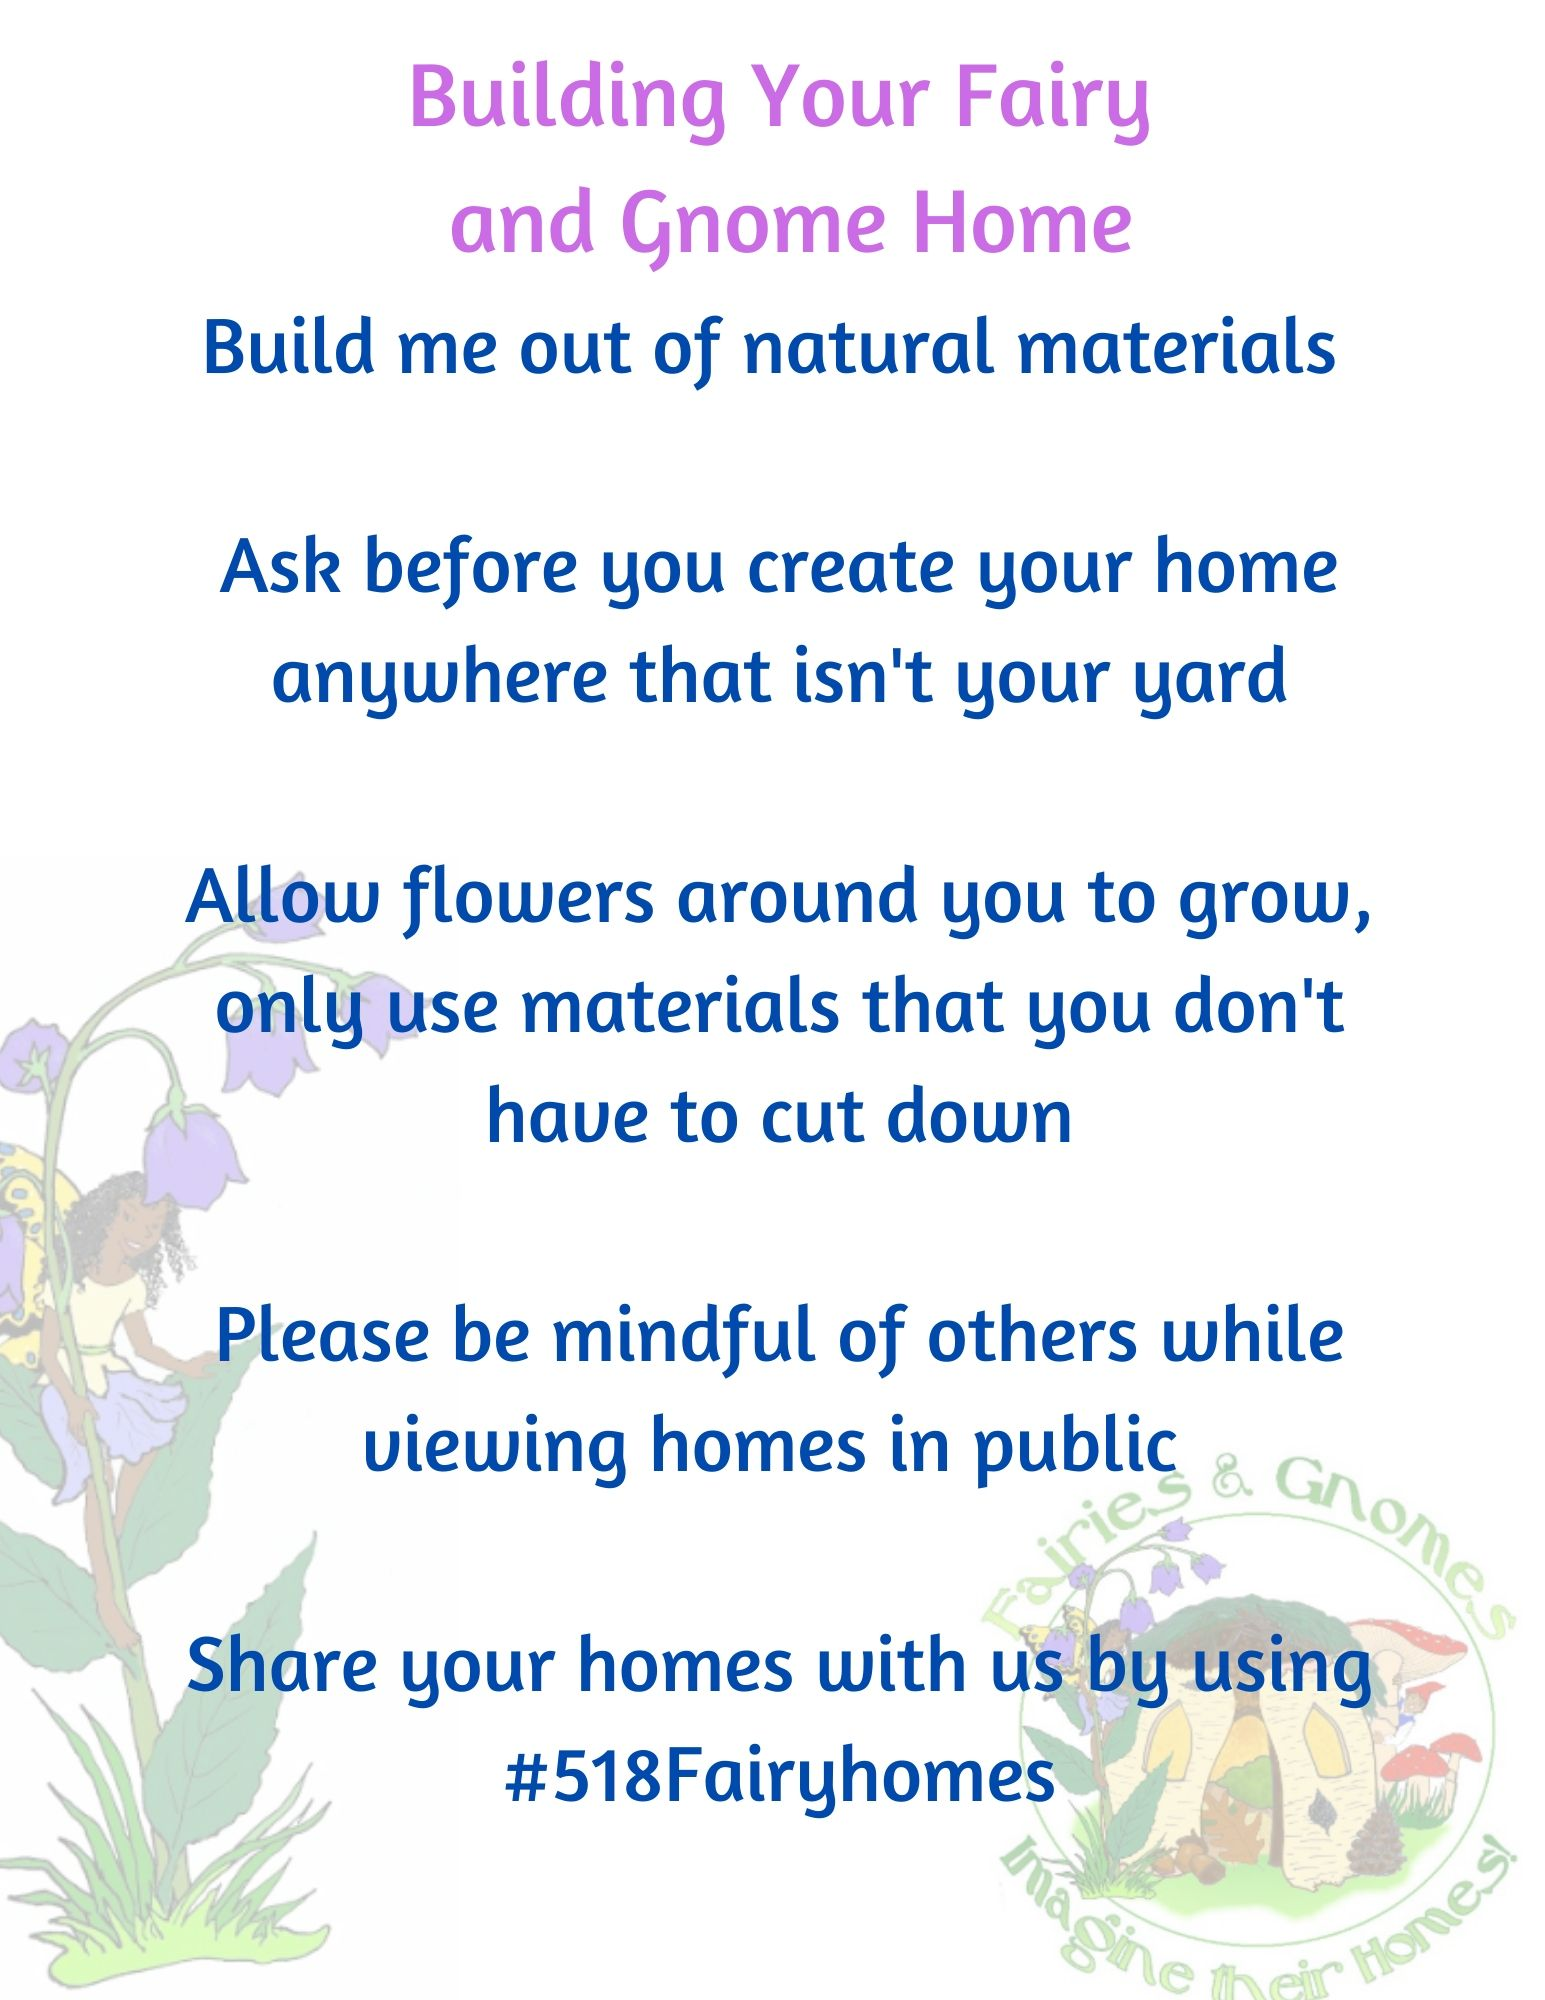 Fairy & Gnome Home Building Rules